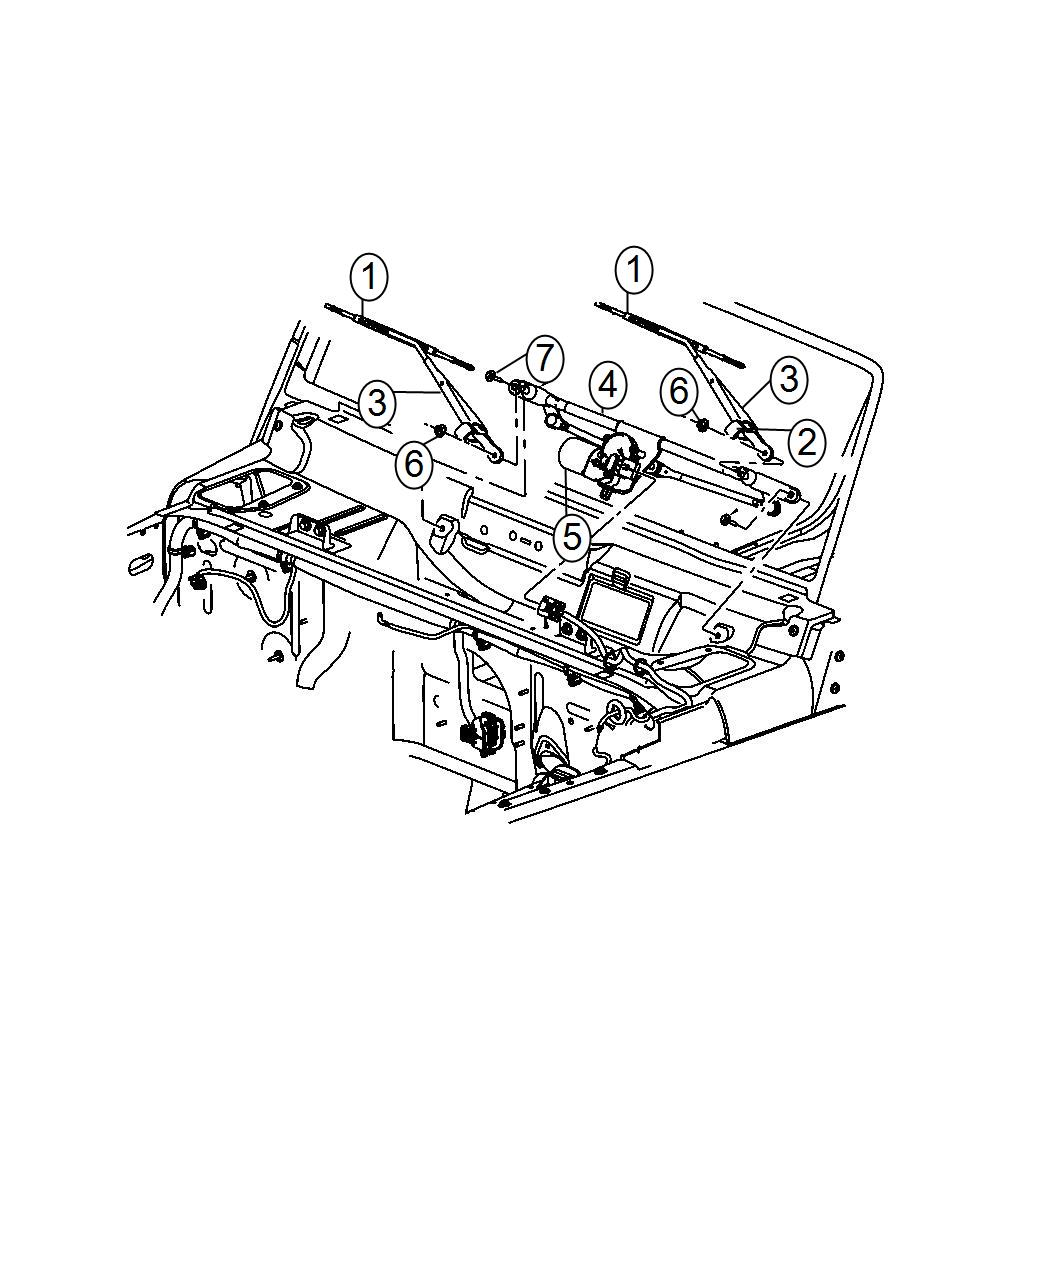 2014 Jeep Wrangler Used for: MOTOR AND LINKAGE. Windshield